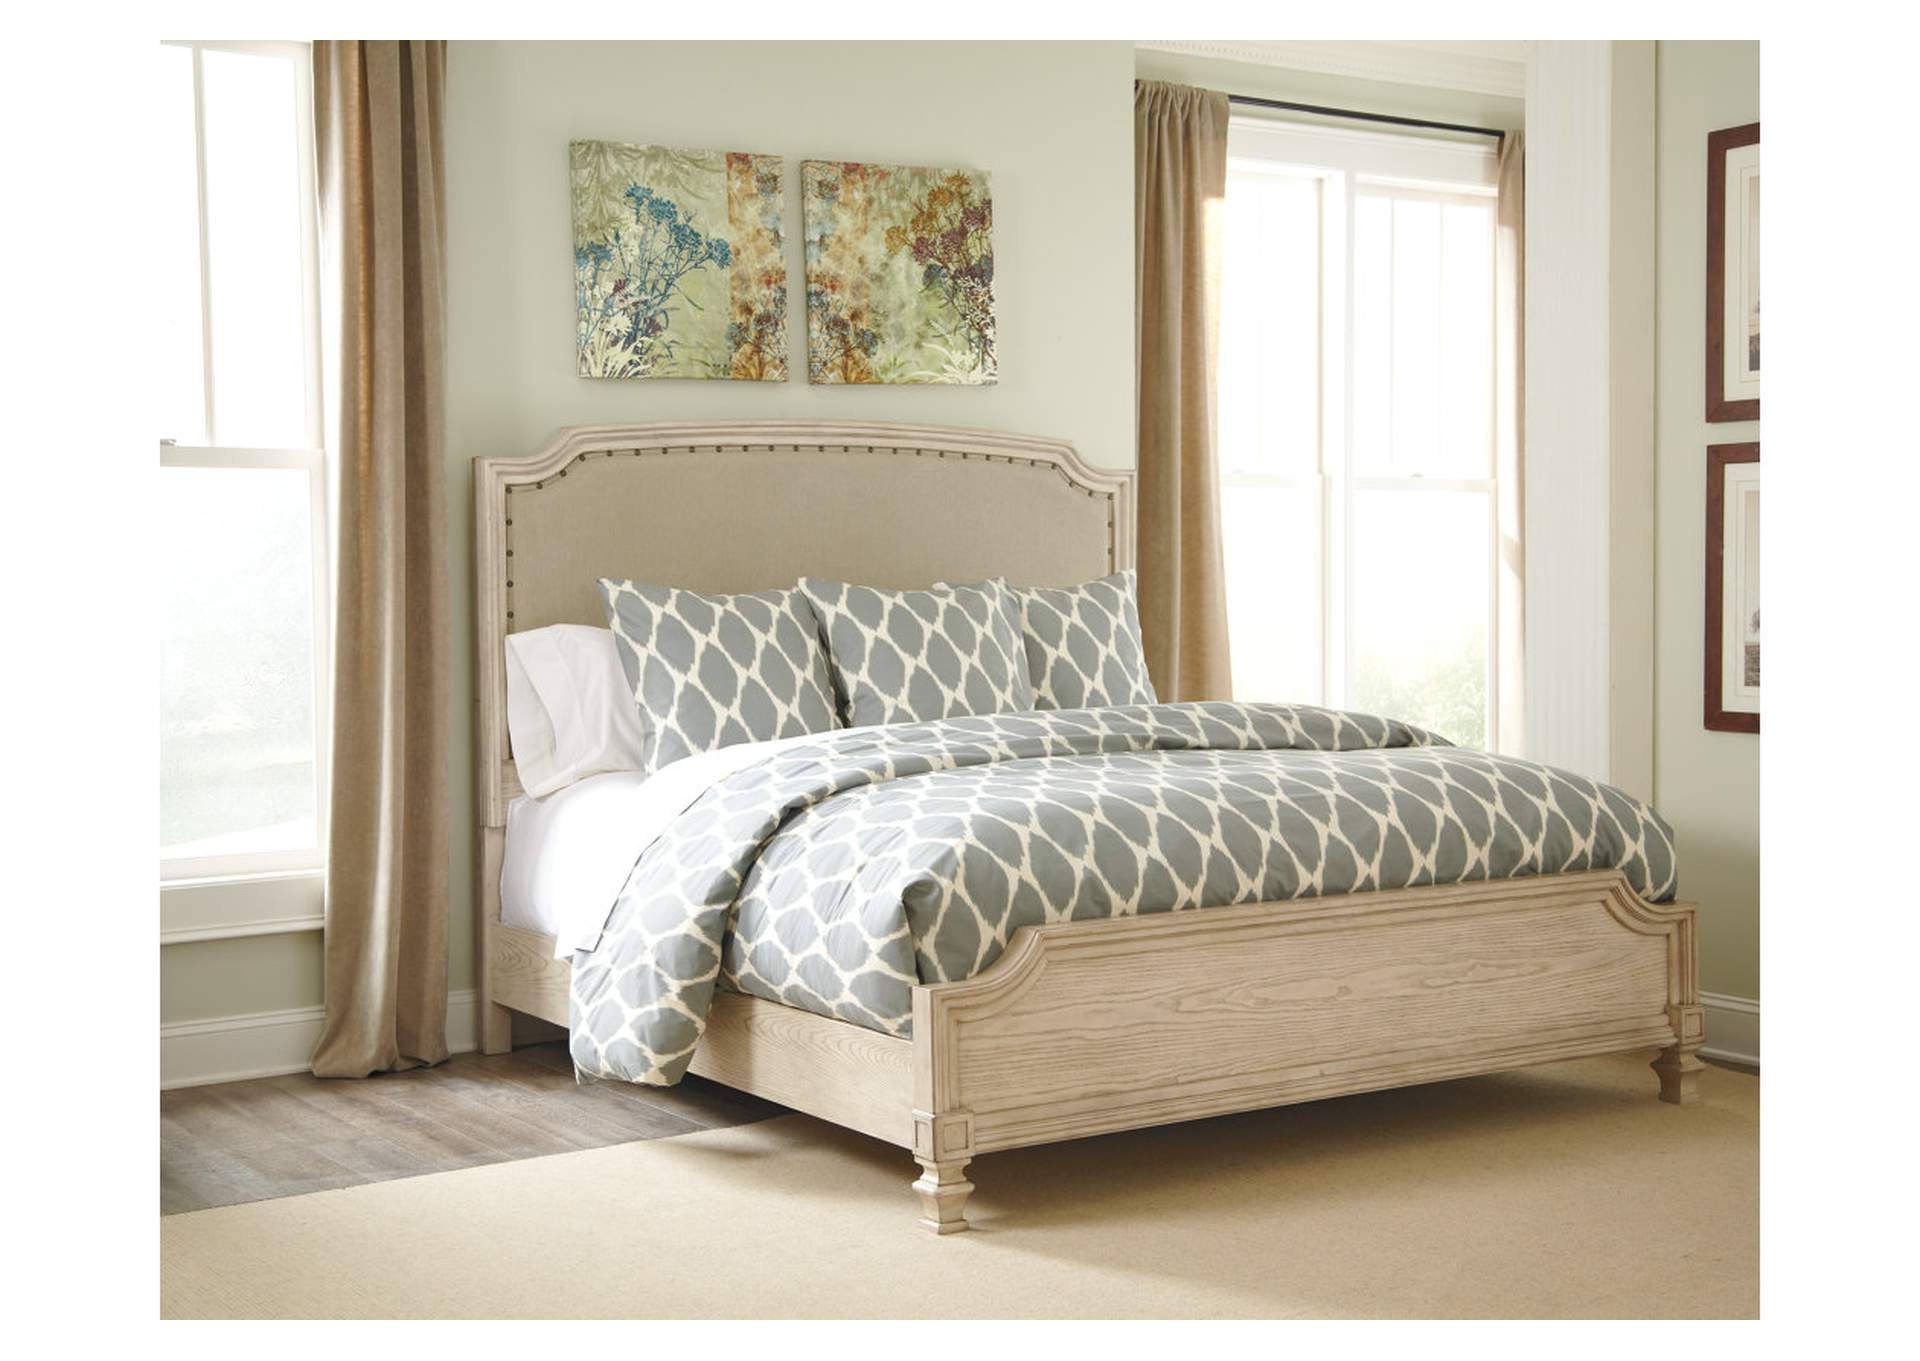 Demarlos California King Upholstered Panel Bed,Signature Design By Ashley